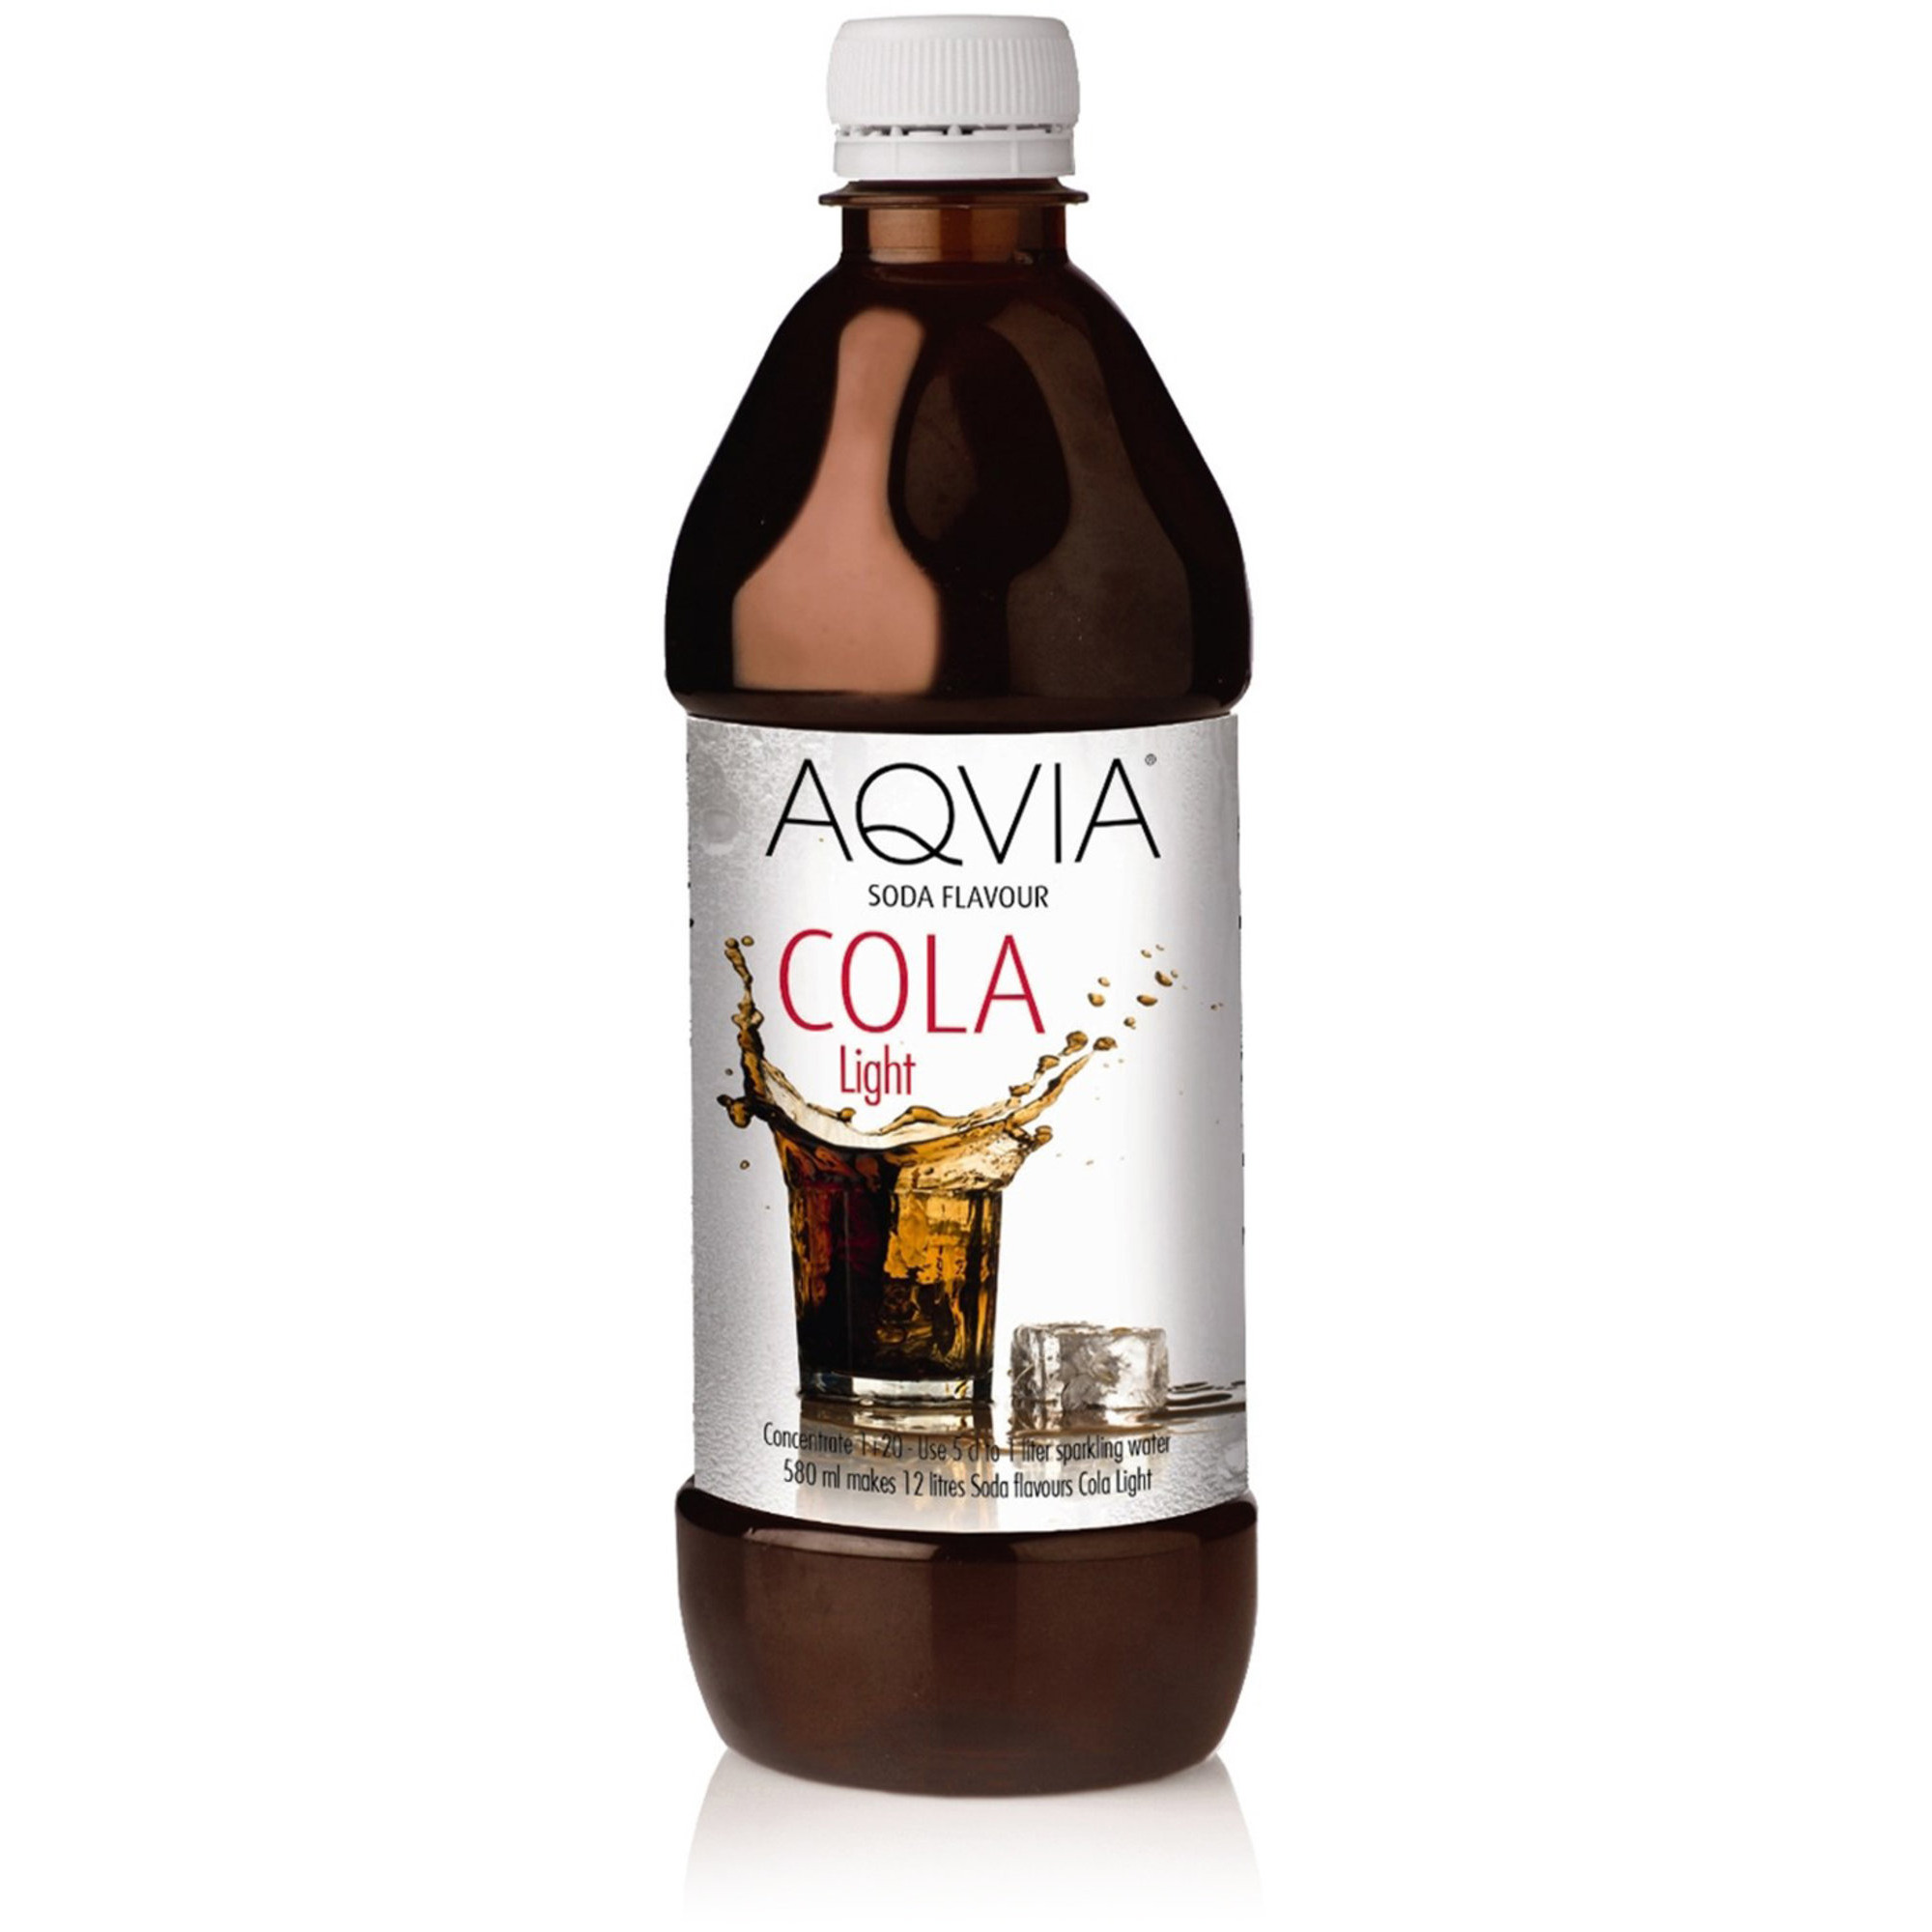 Aqvia Cola light